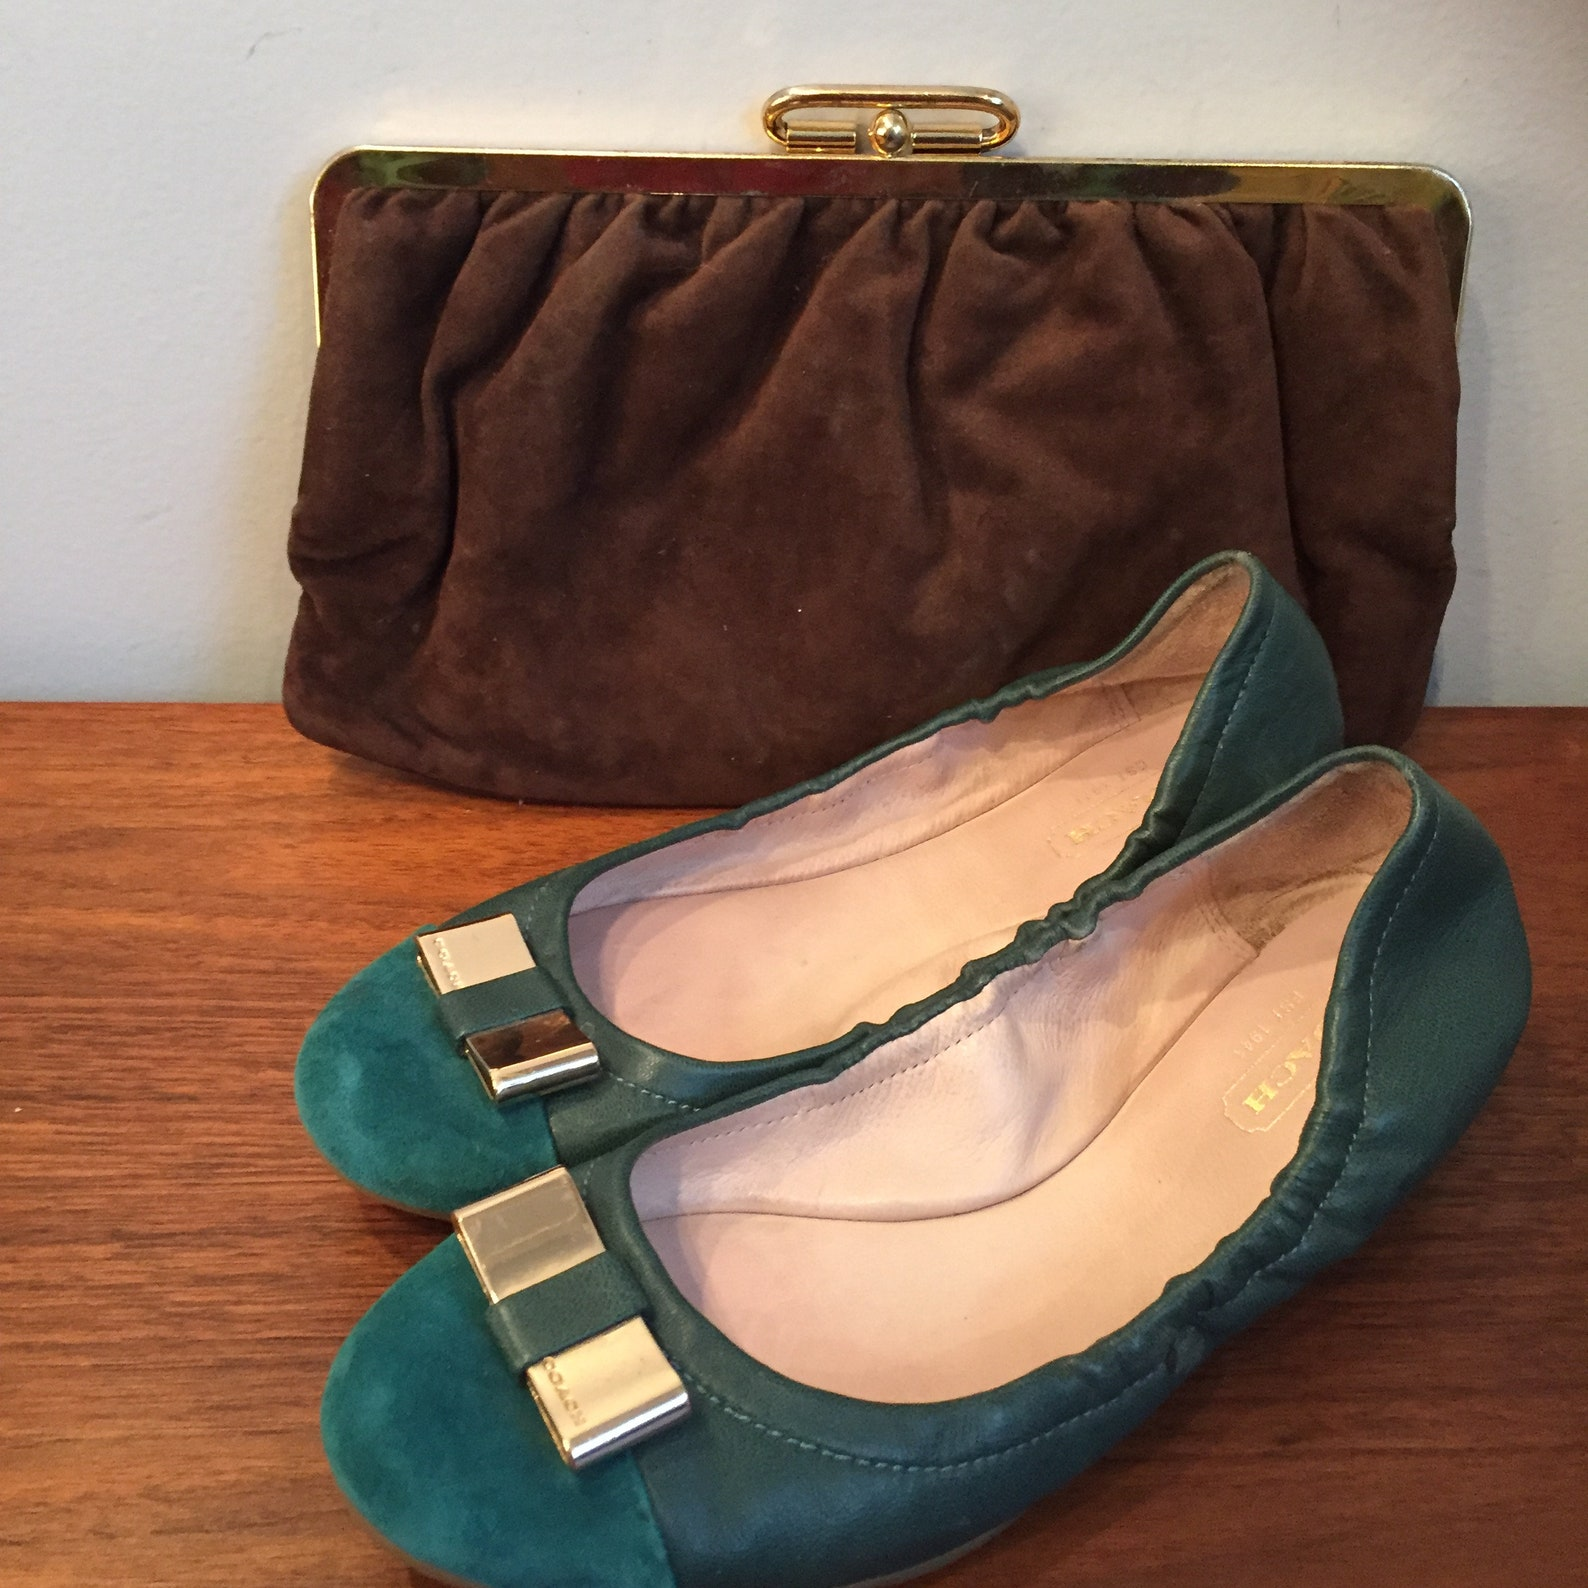 vintage coach suede leather shoes green gold ballet flats gold bow buckle vintage suede driving shoes suede leather moccasin des